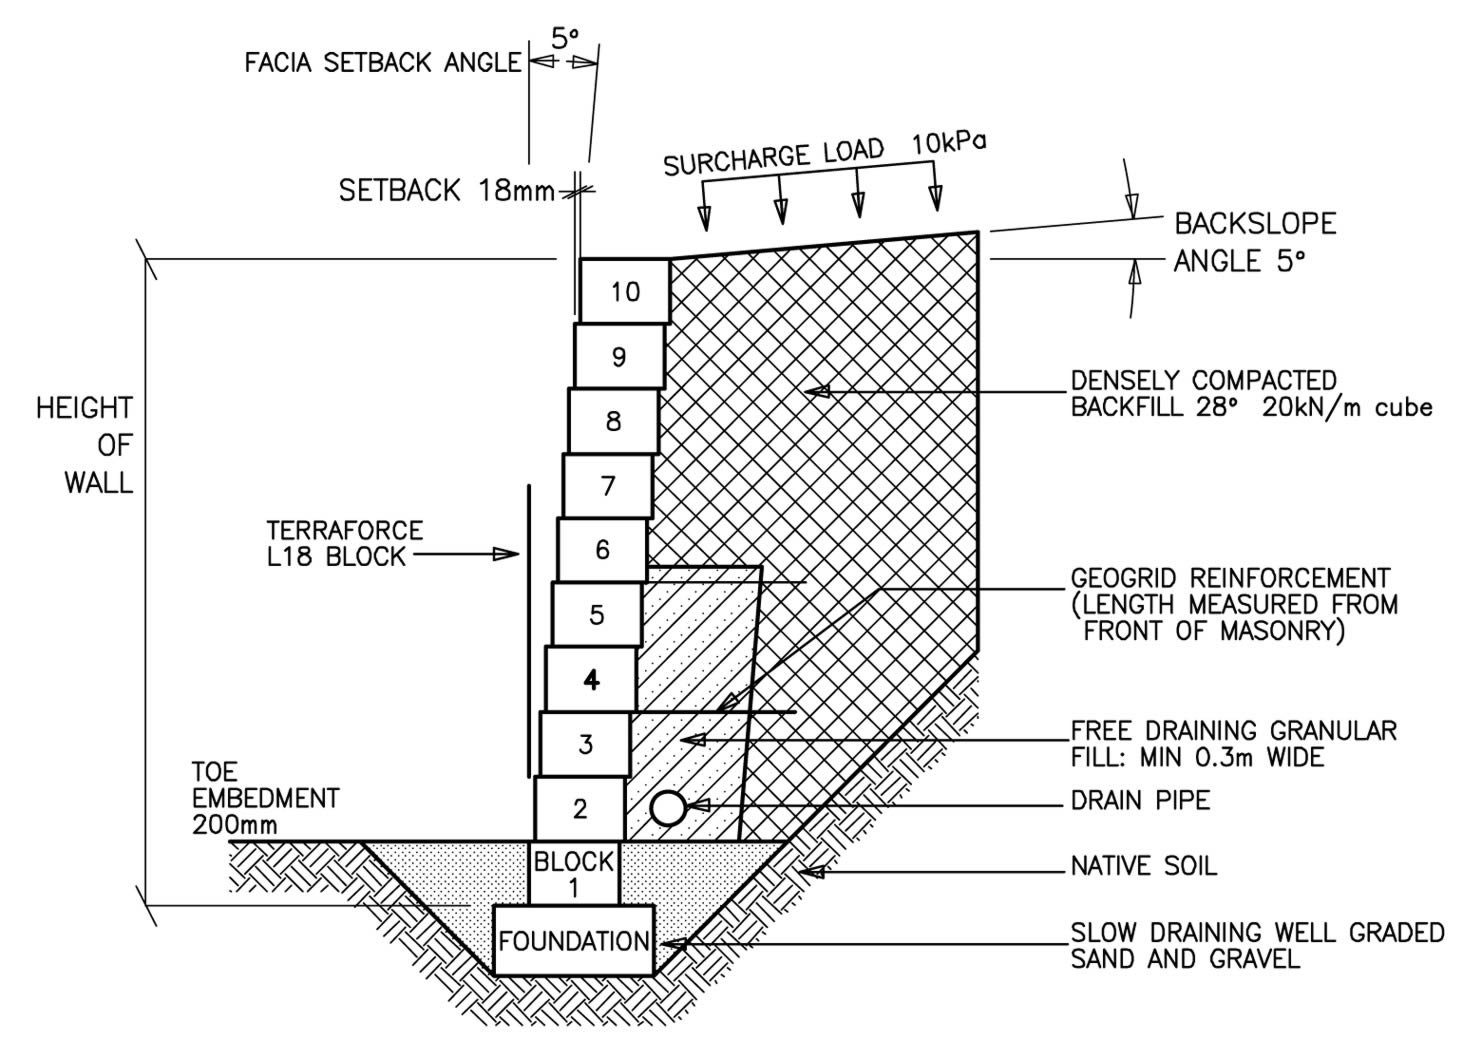 the maximum wall heights for a single skin mass gravity block retaining wall system - Segmental Retaining Wall Design 2